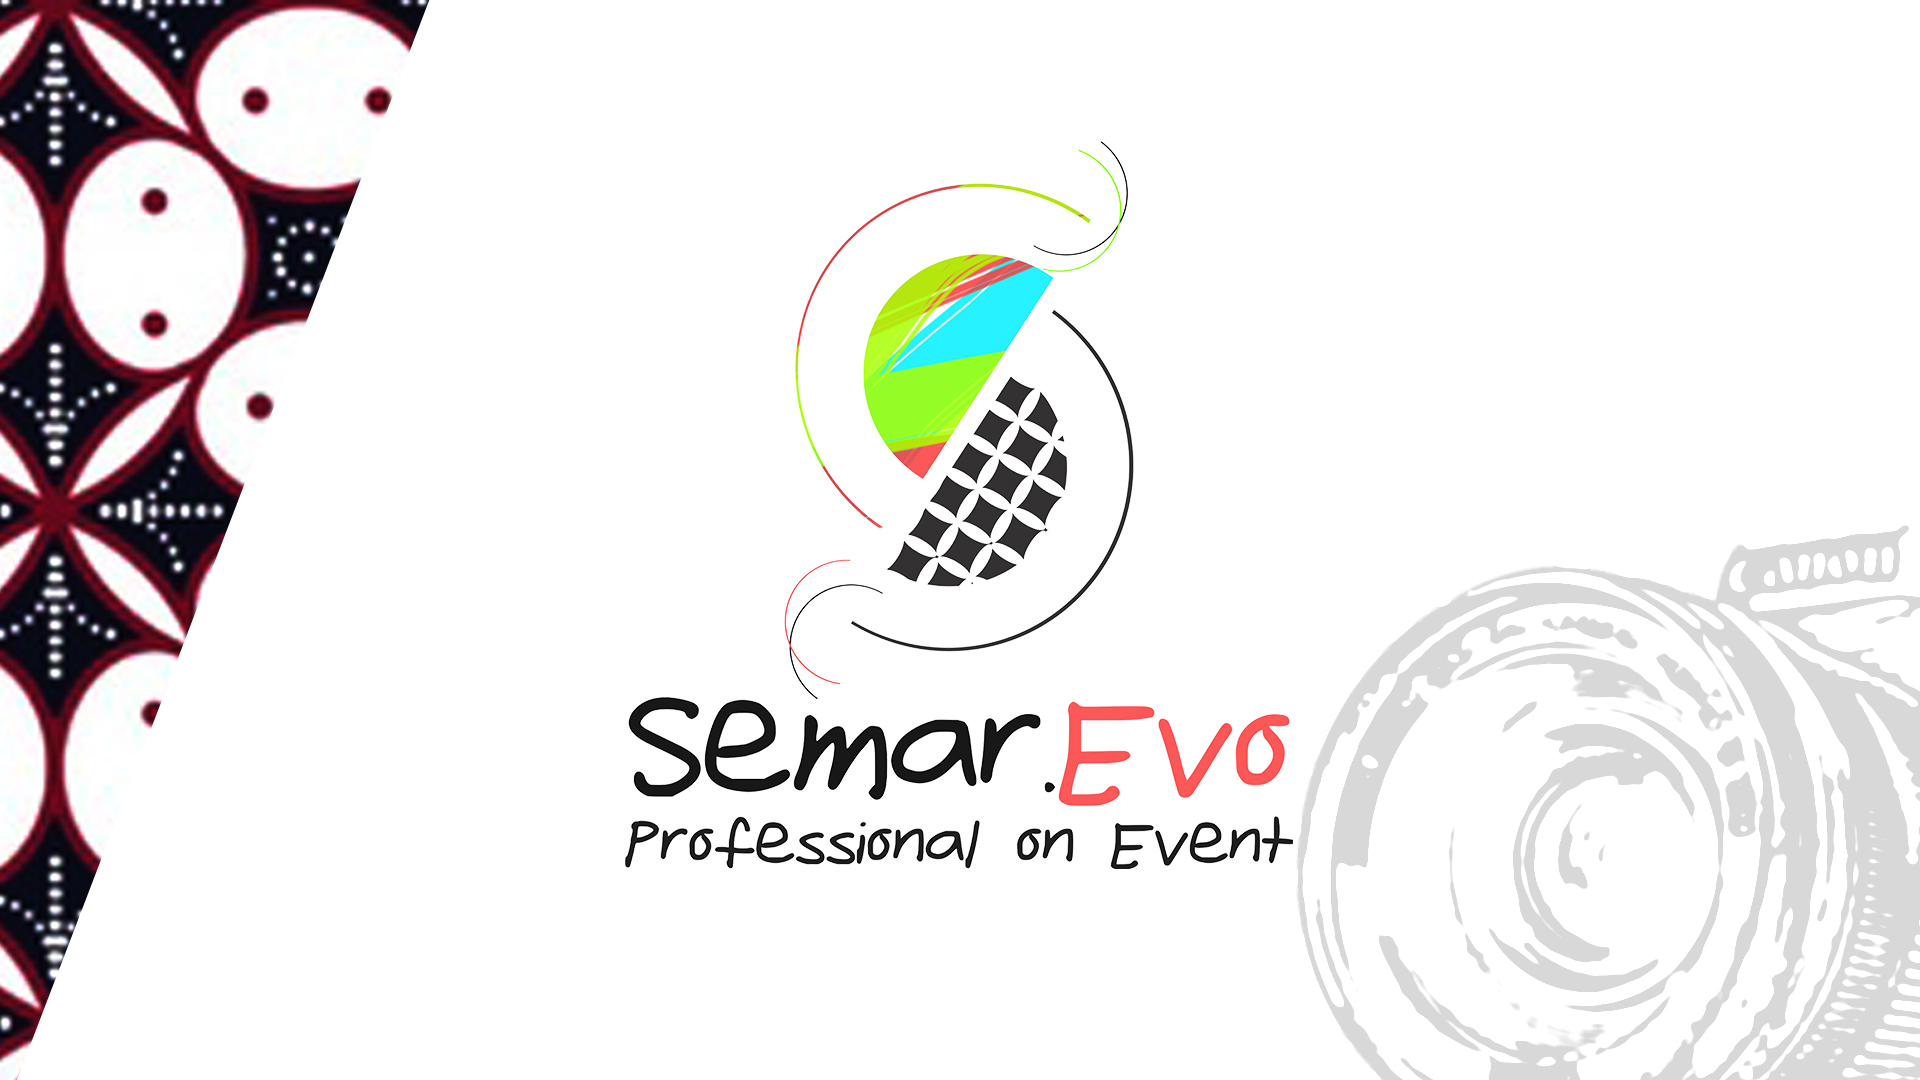 PROFESSIONAL ON EVENT